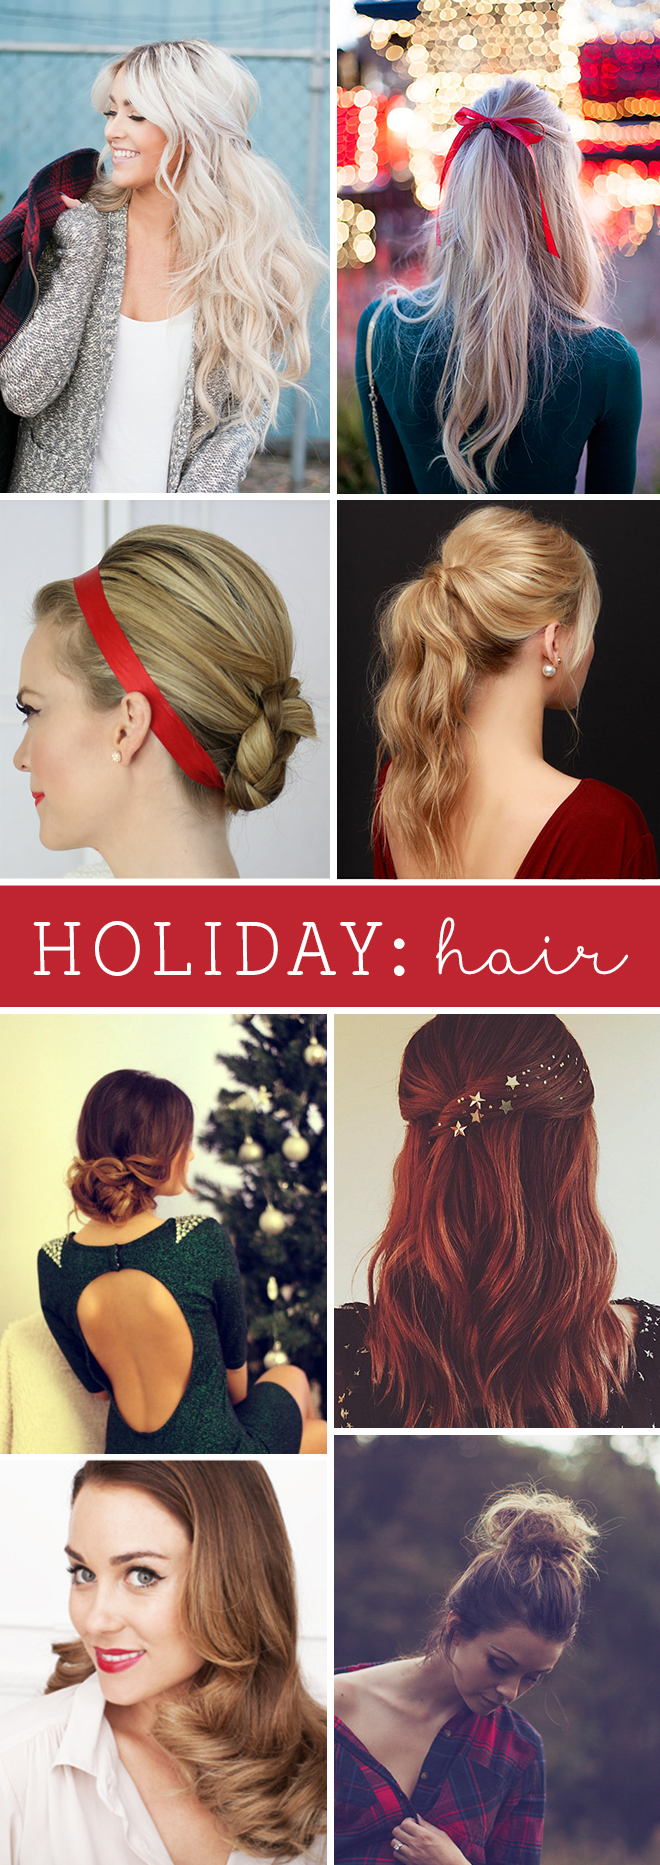 Awesome ideas and tips for holiday hair styles!